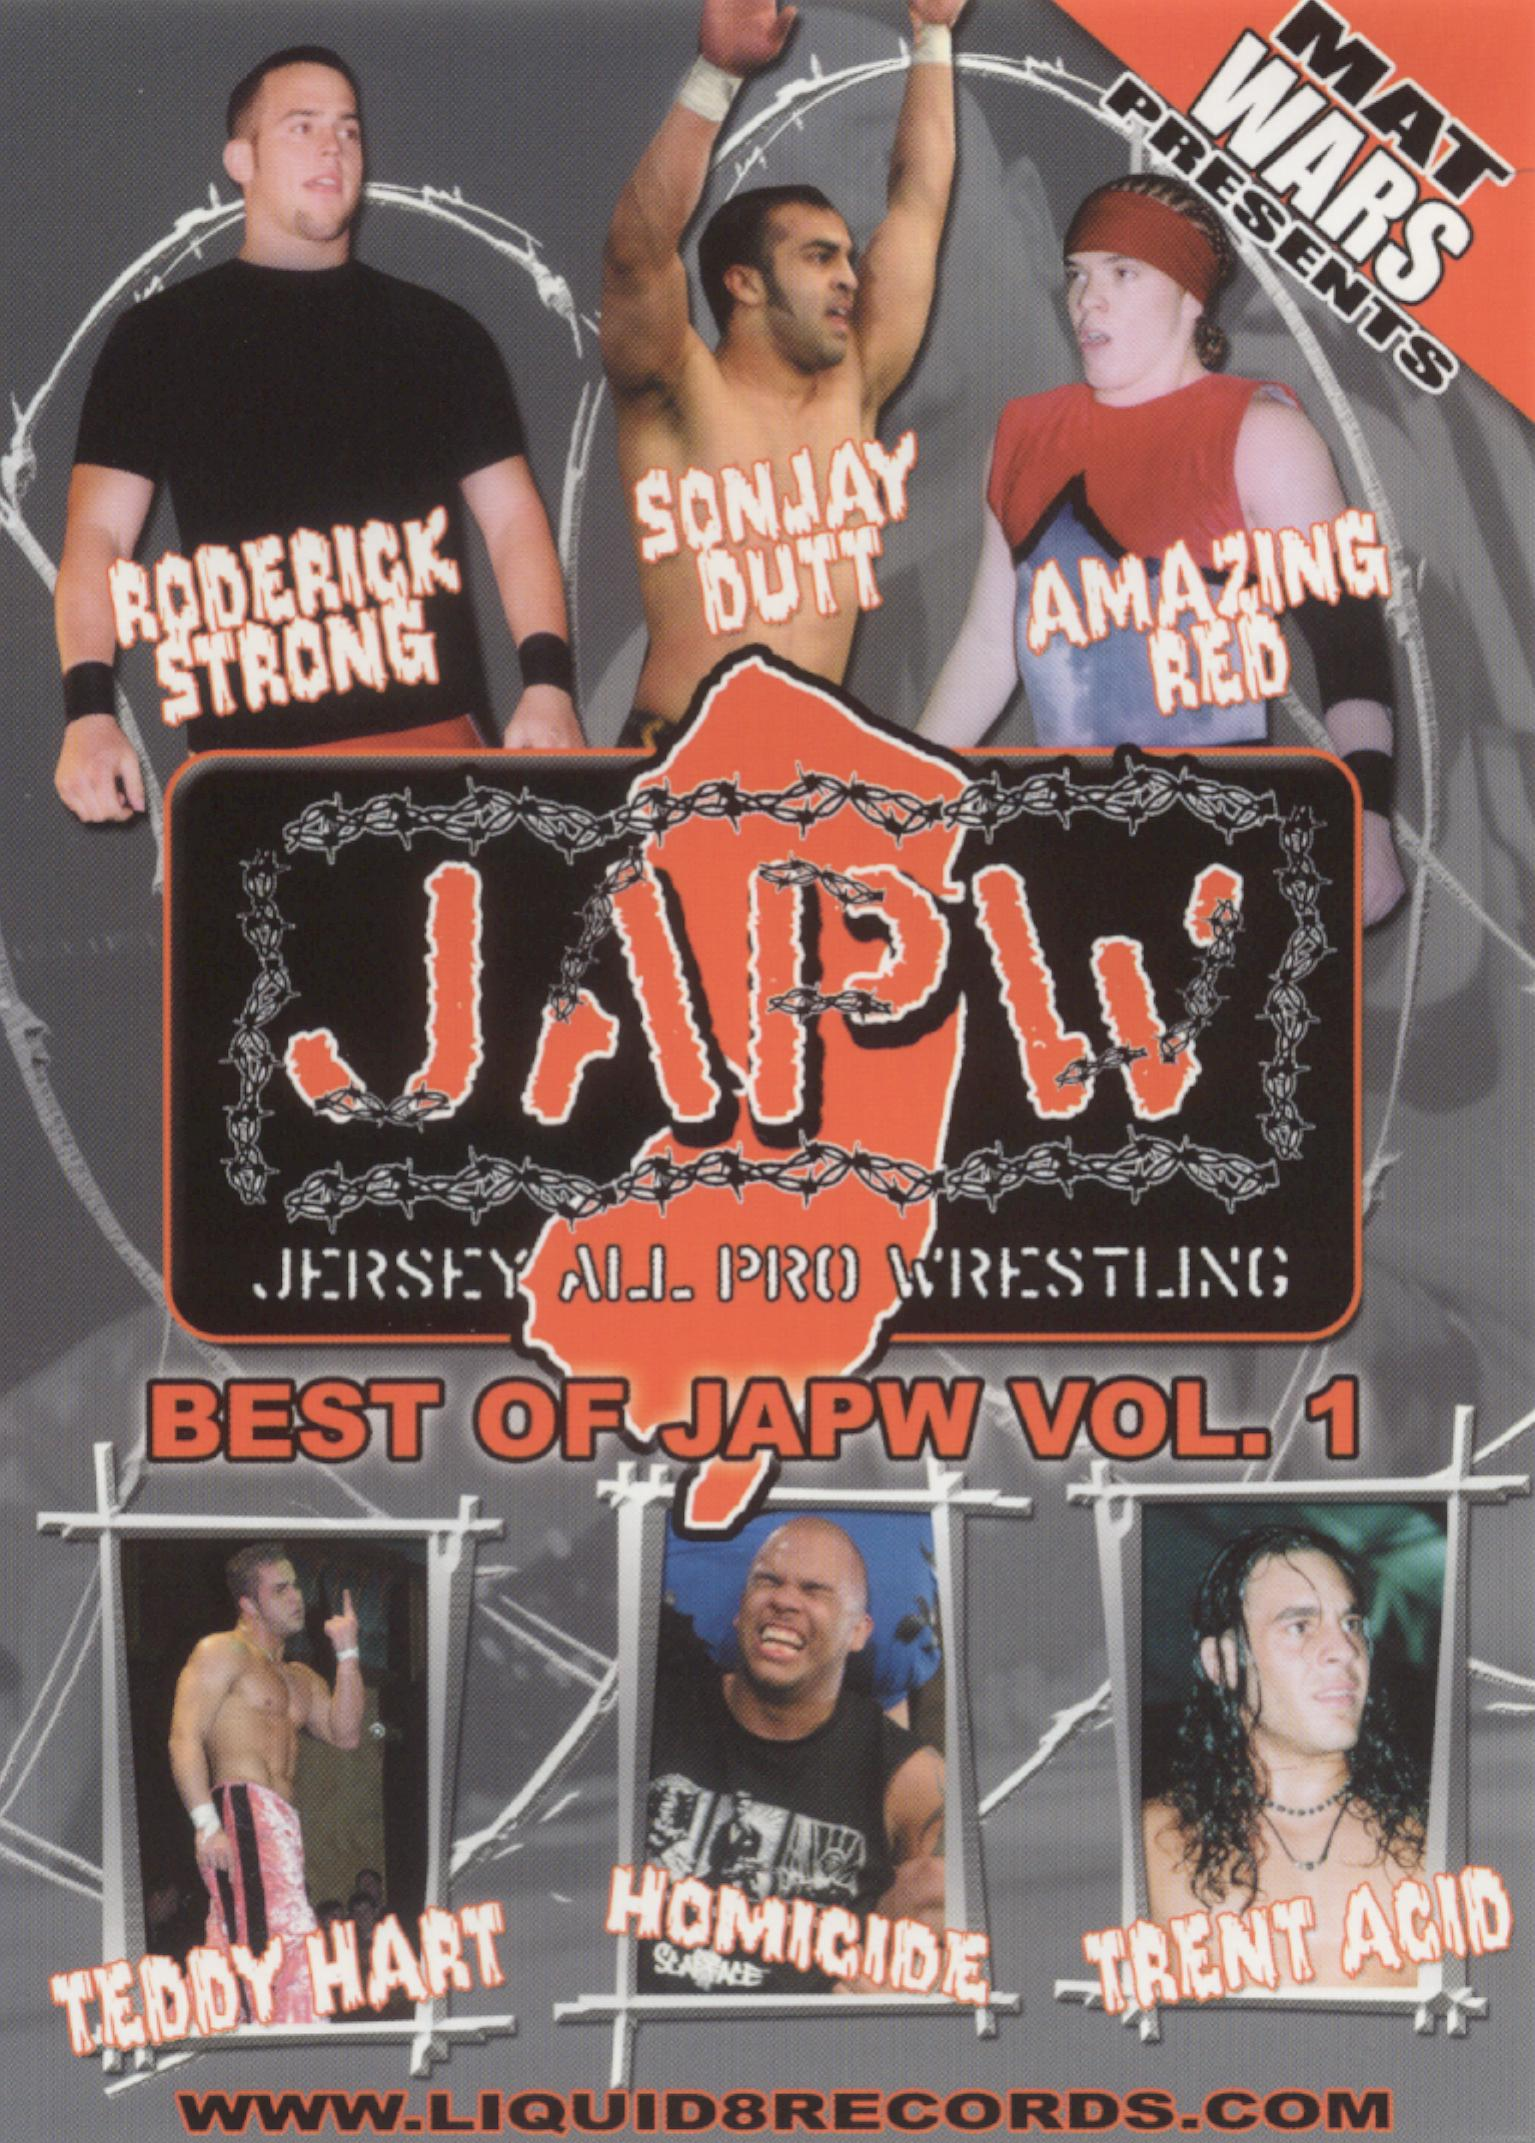 Best of Jersey All Pro Wrestling, Vol. 1